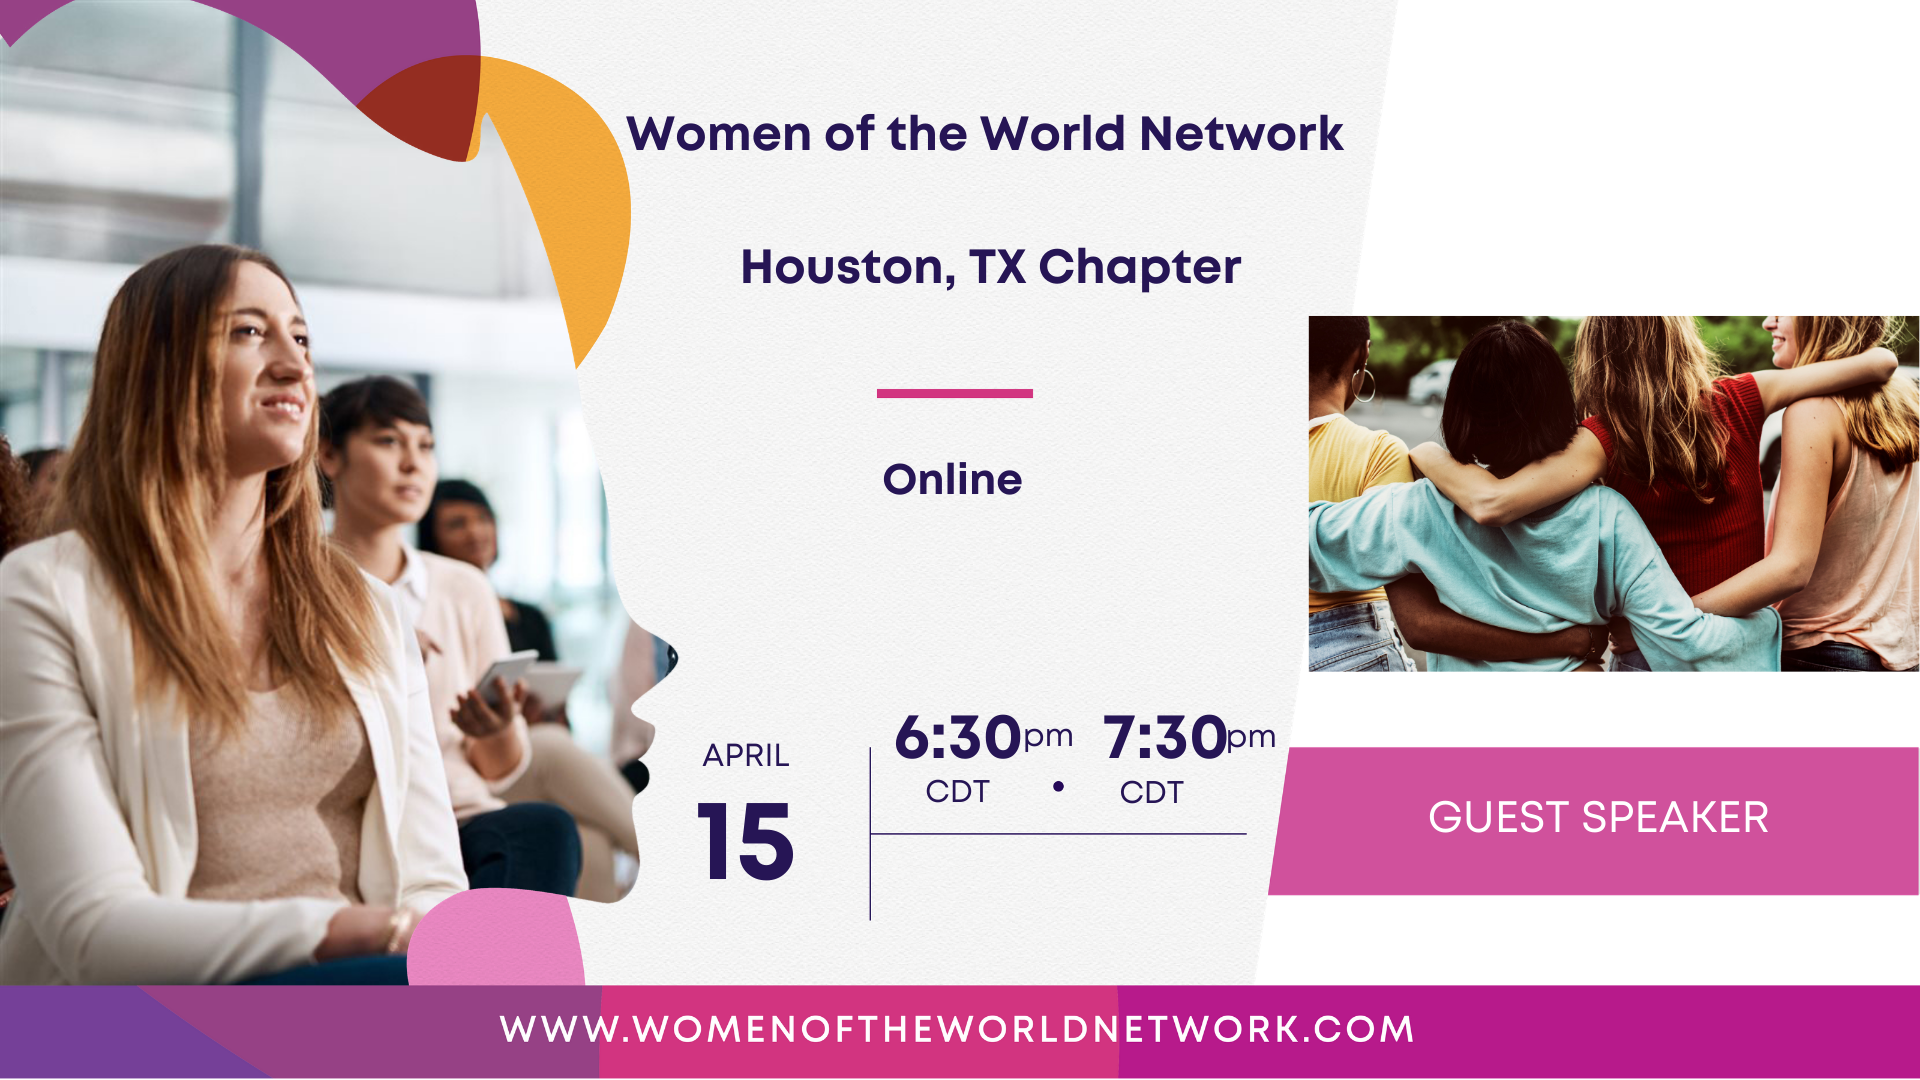 Women of the World Network: Houston TX Chapter